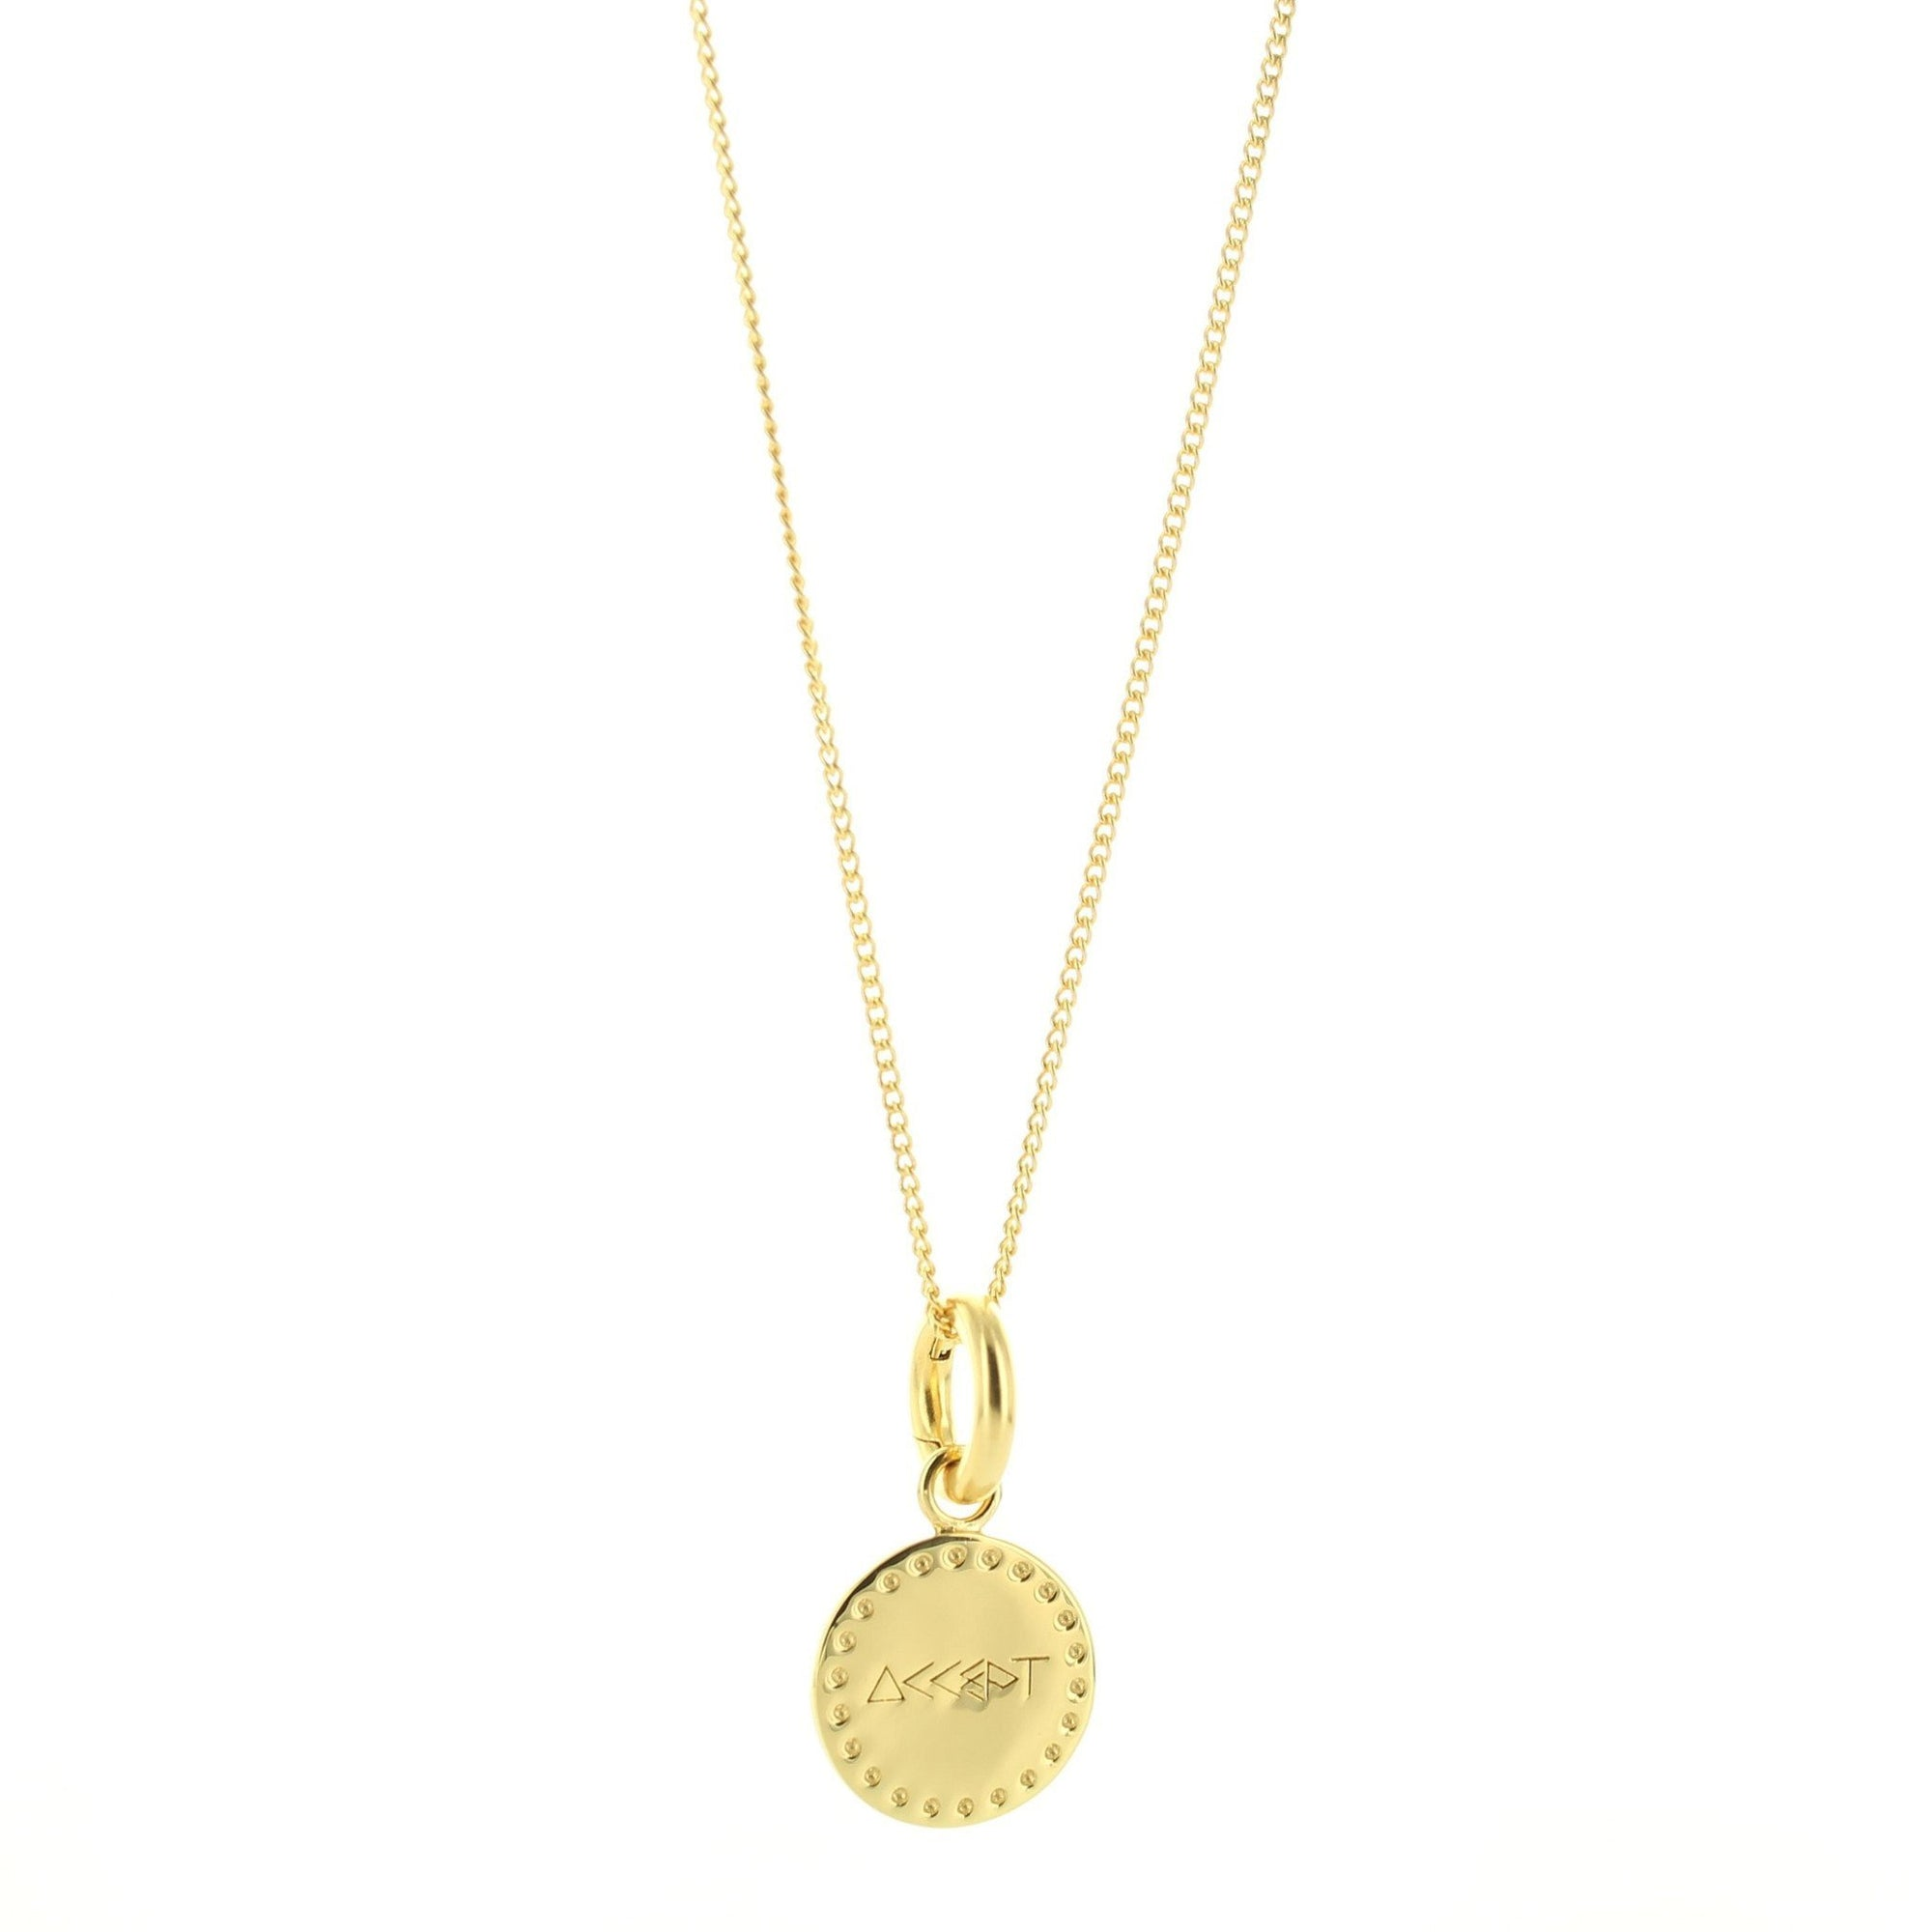 ACCEPT FLOATING CHARM PENDANT ALL METAL GOLD - SO PRETTY CARA COTTER